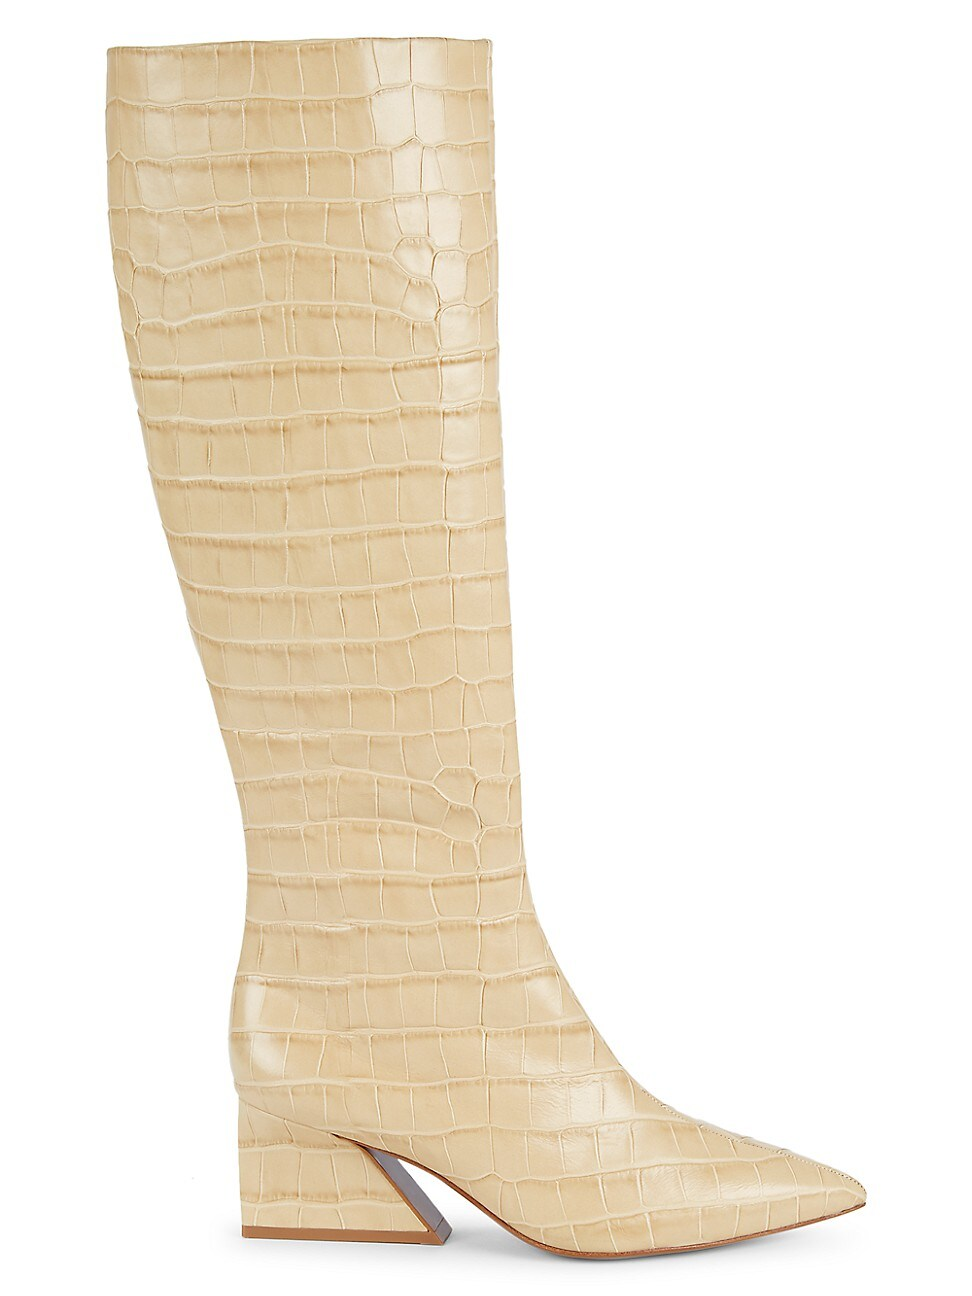 Mercedes Castillo WOMEN'S KYLE POINT-TOE CROC-EMBOSSED LEATHER BOOTS